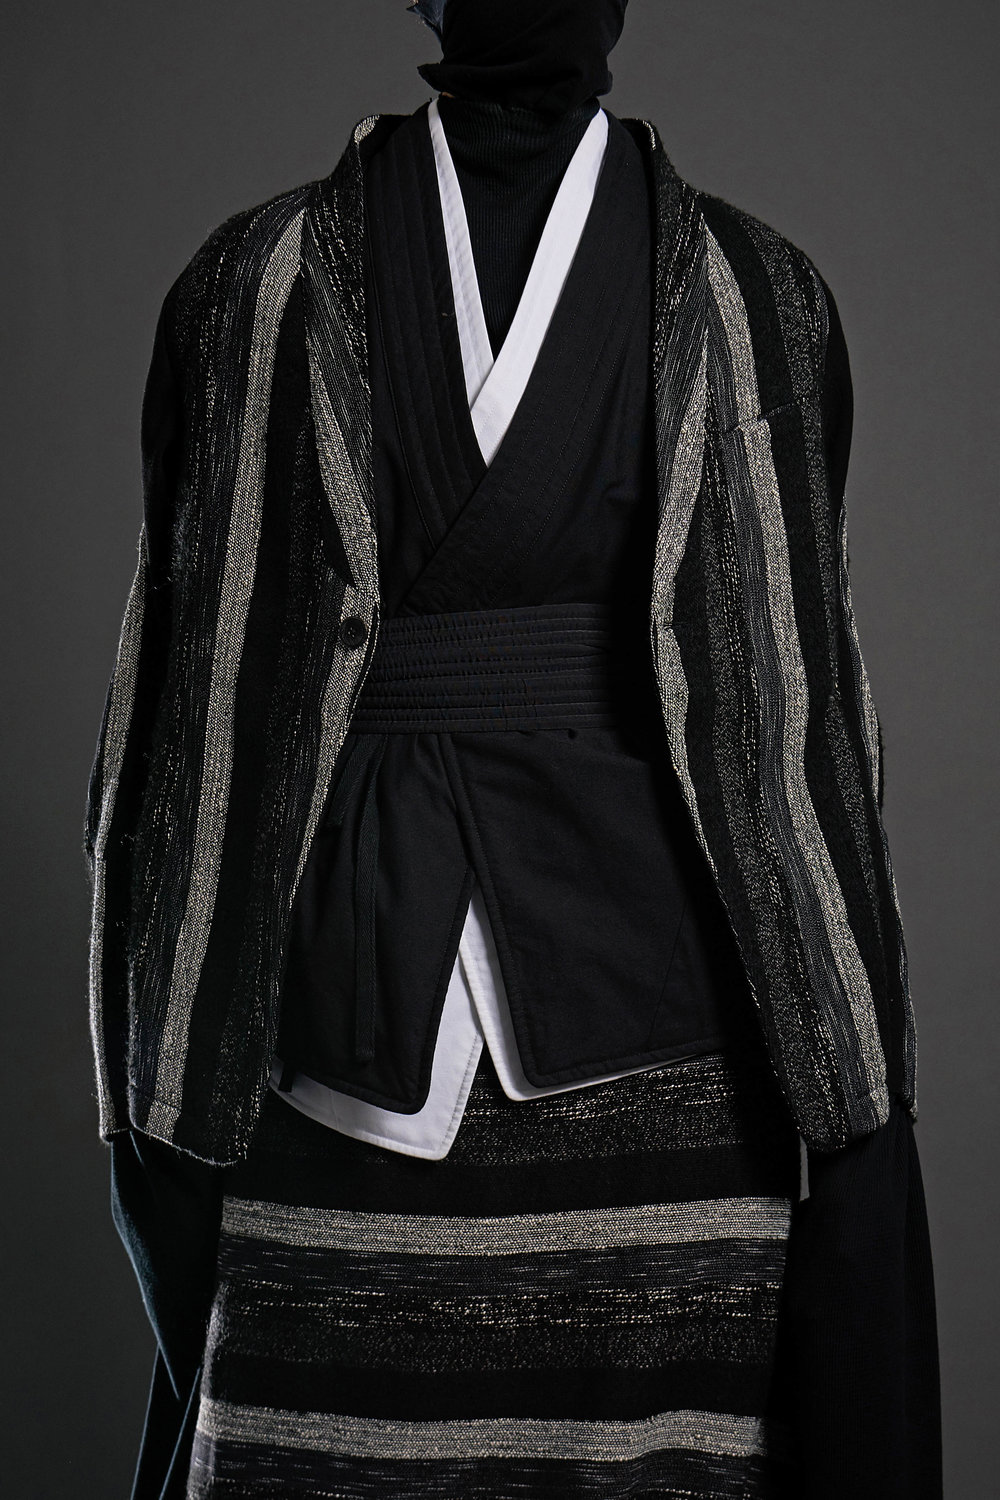 Look 4   ARC Jacket 6  / Black and White Melange   ARC Kimono Shirt  / Black   ARC Kimono Shirt  / White   ARC Obi Belt  / Black